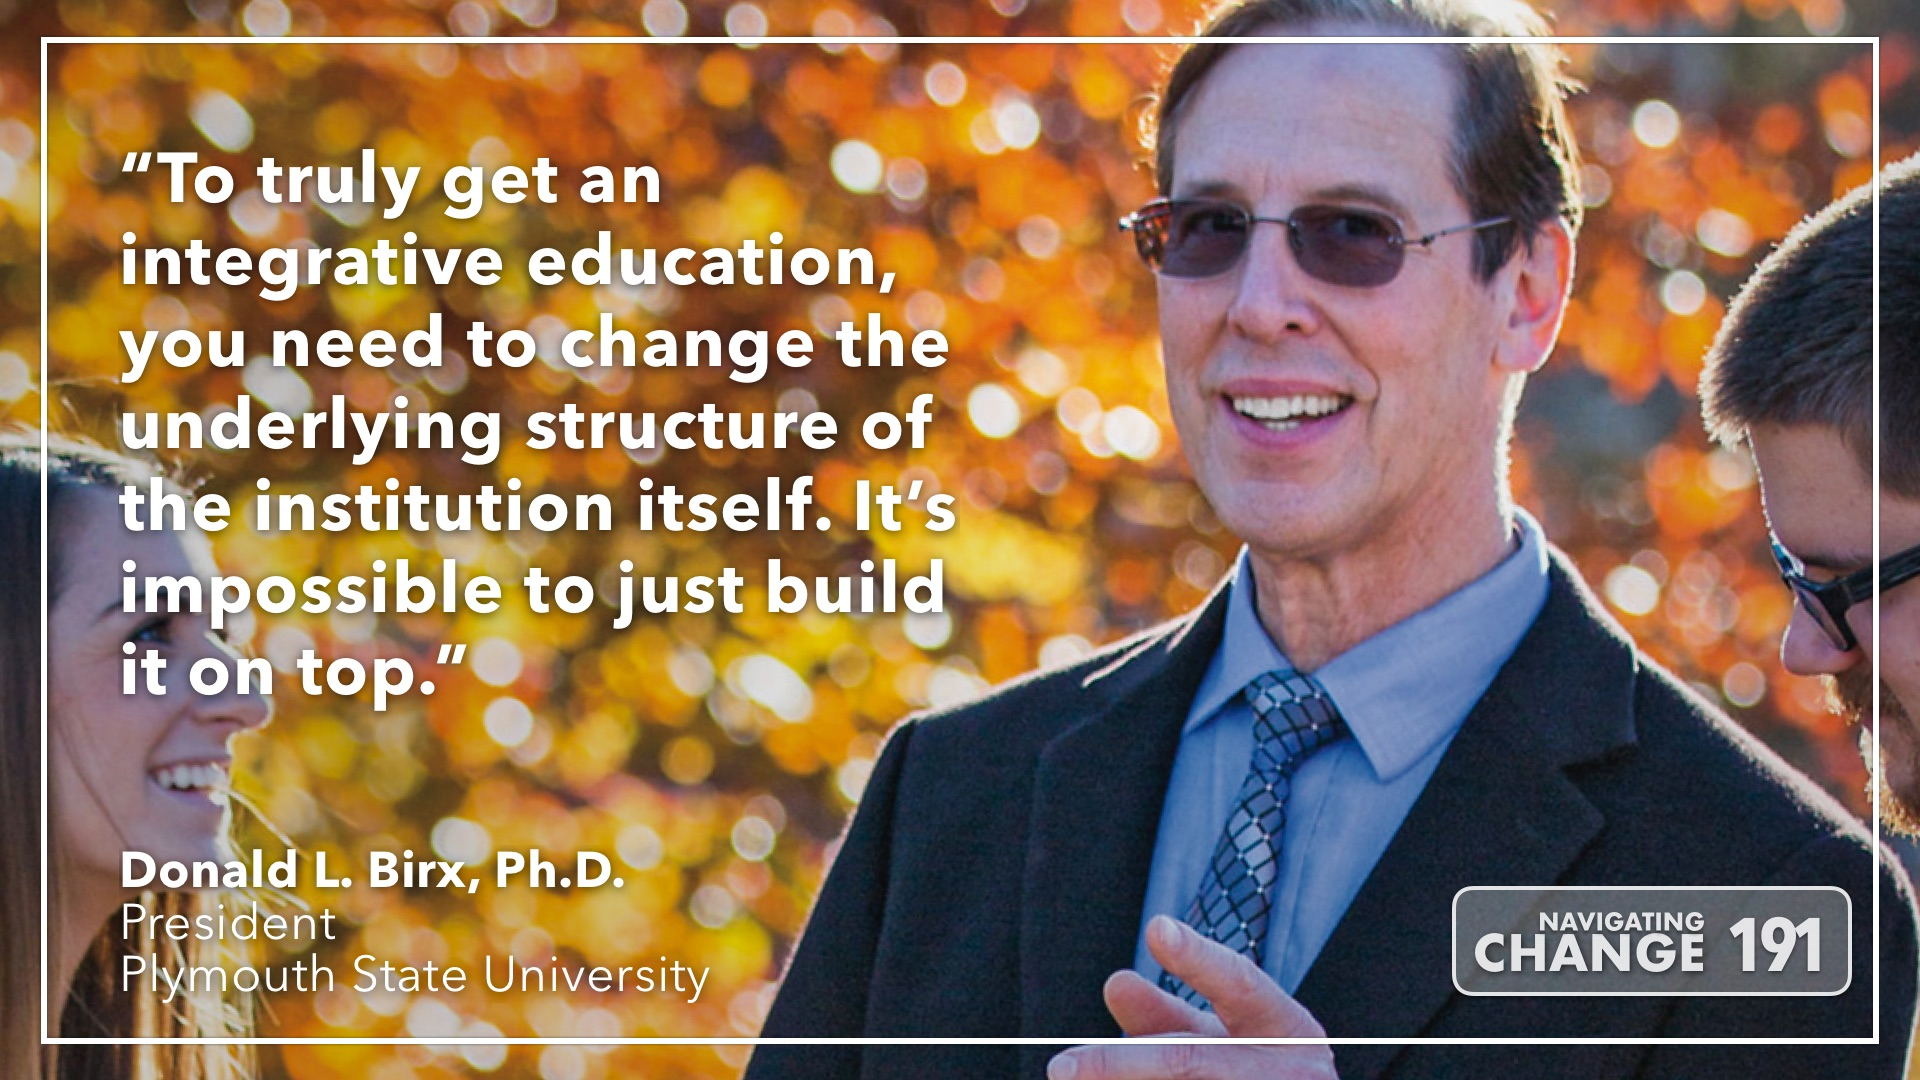 Listen to Don Birx on Navigating Change: The Education Podcast